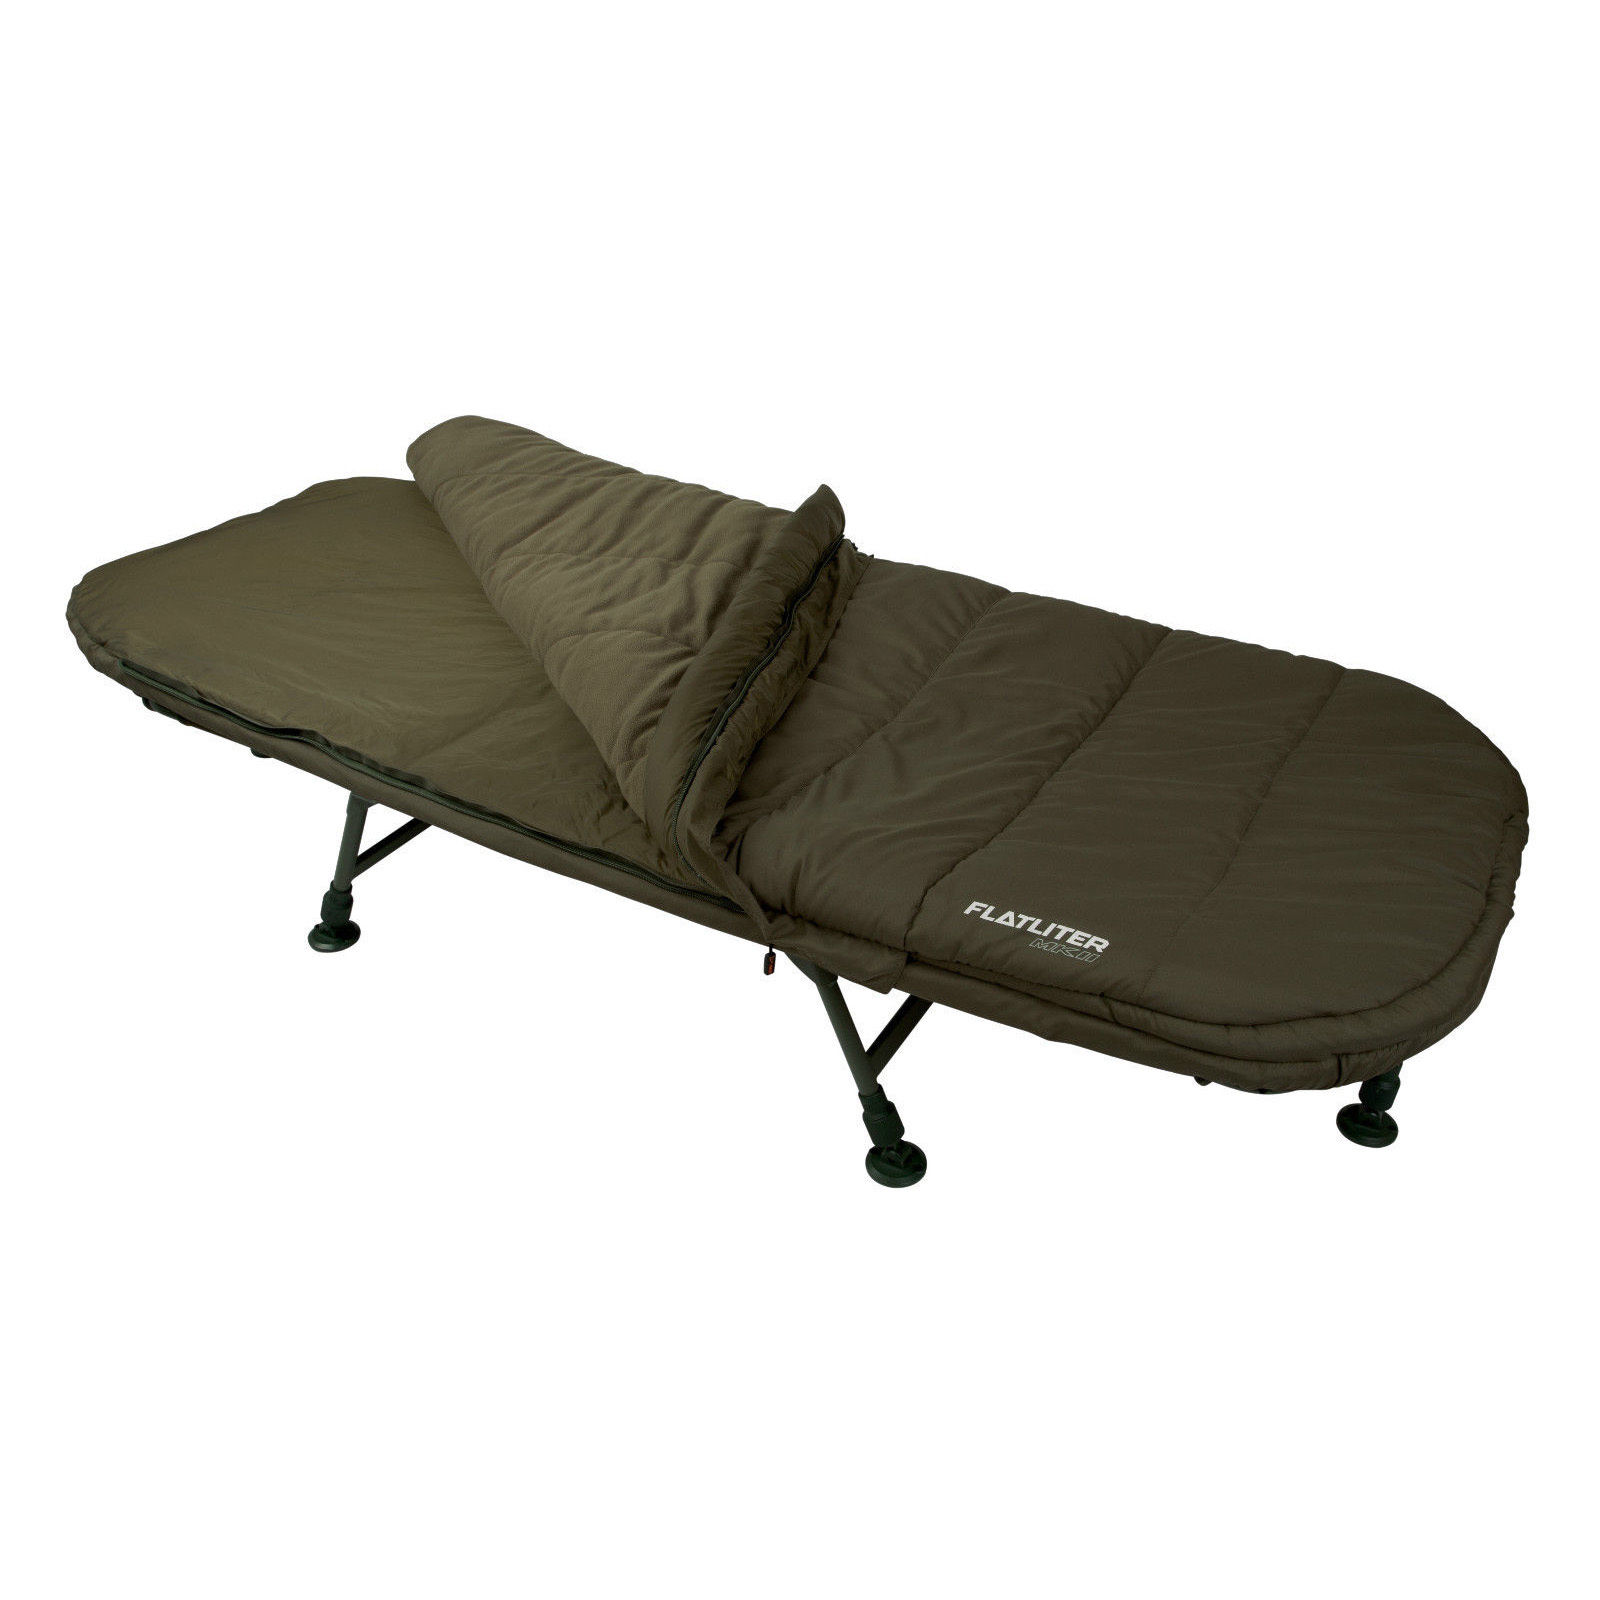 Bedchair Reviews 2019 Comparing Bed Chairs From All